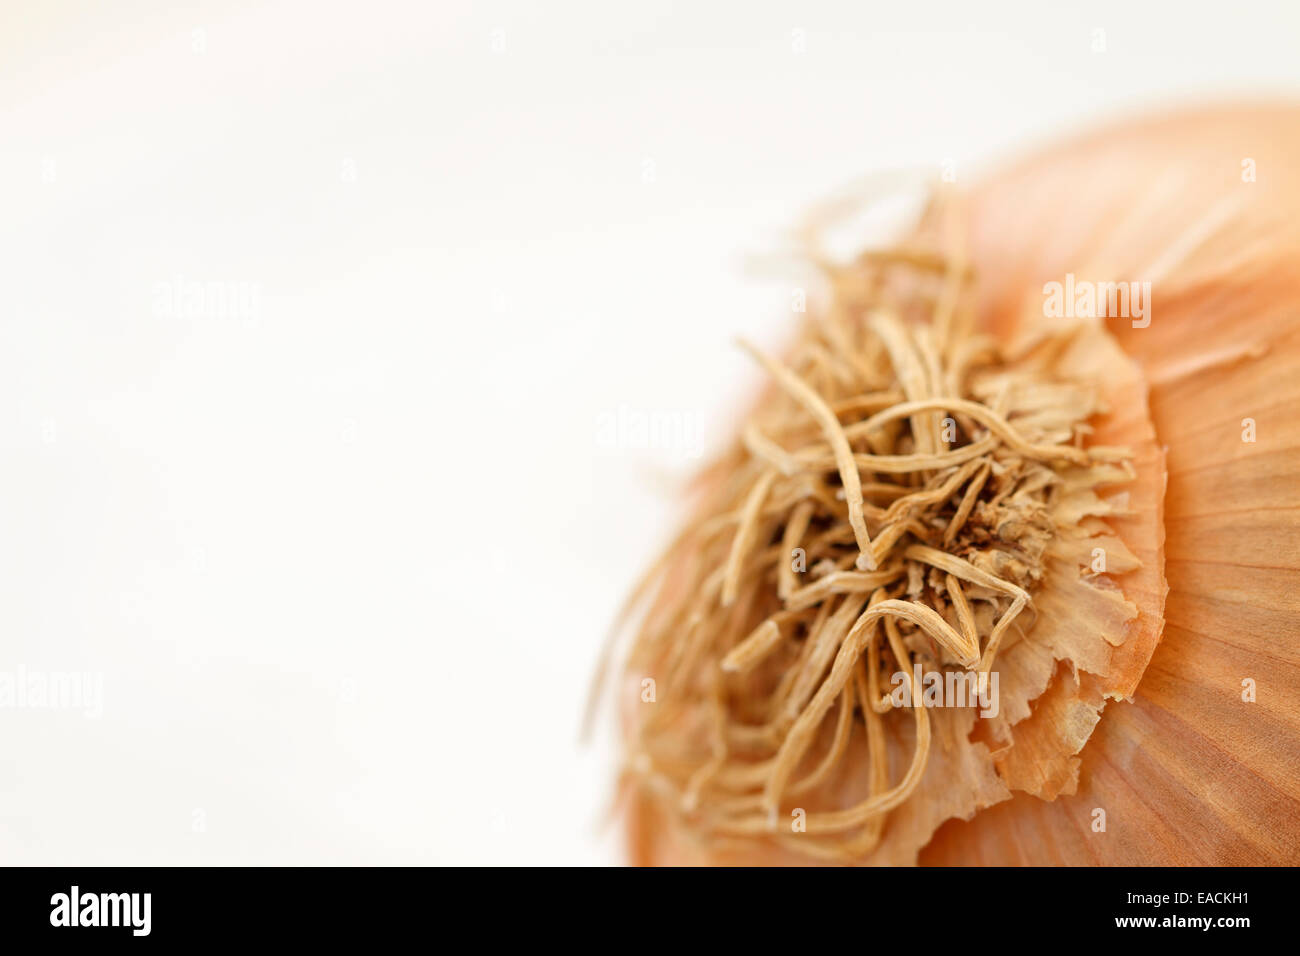 Onion, close up. - Stock Image